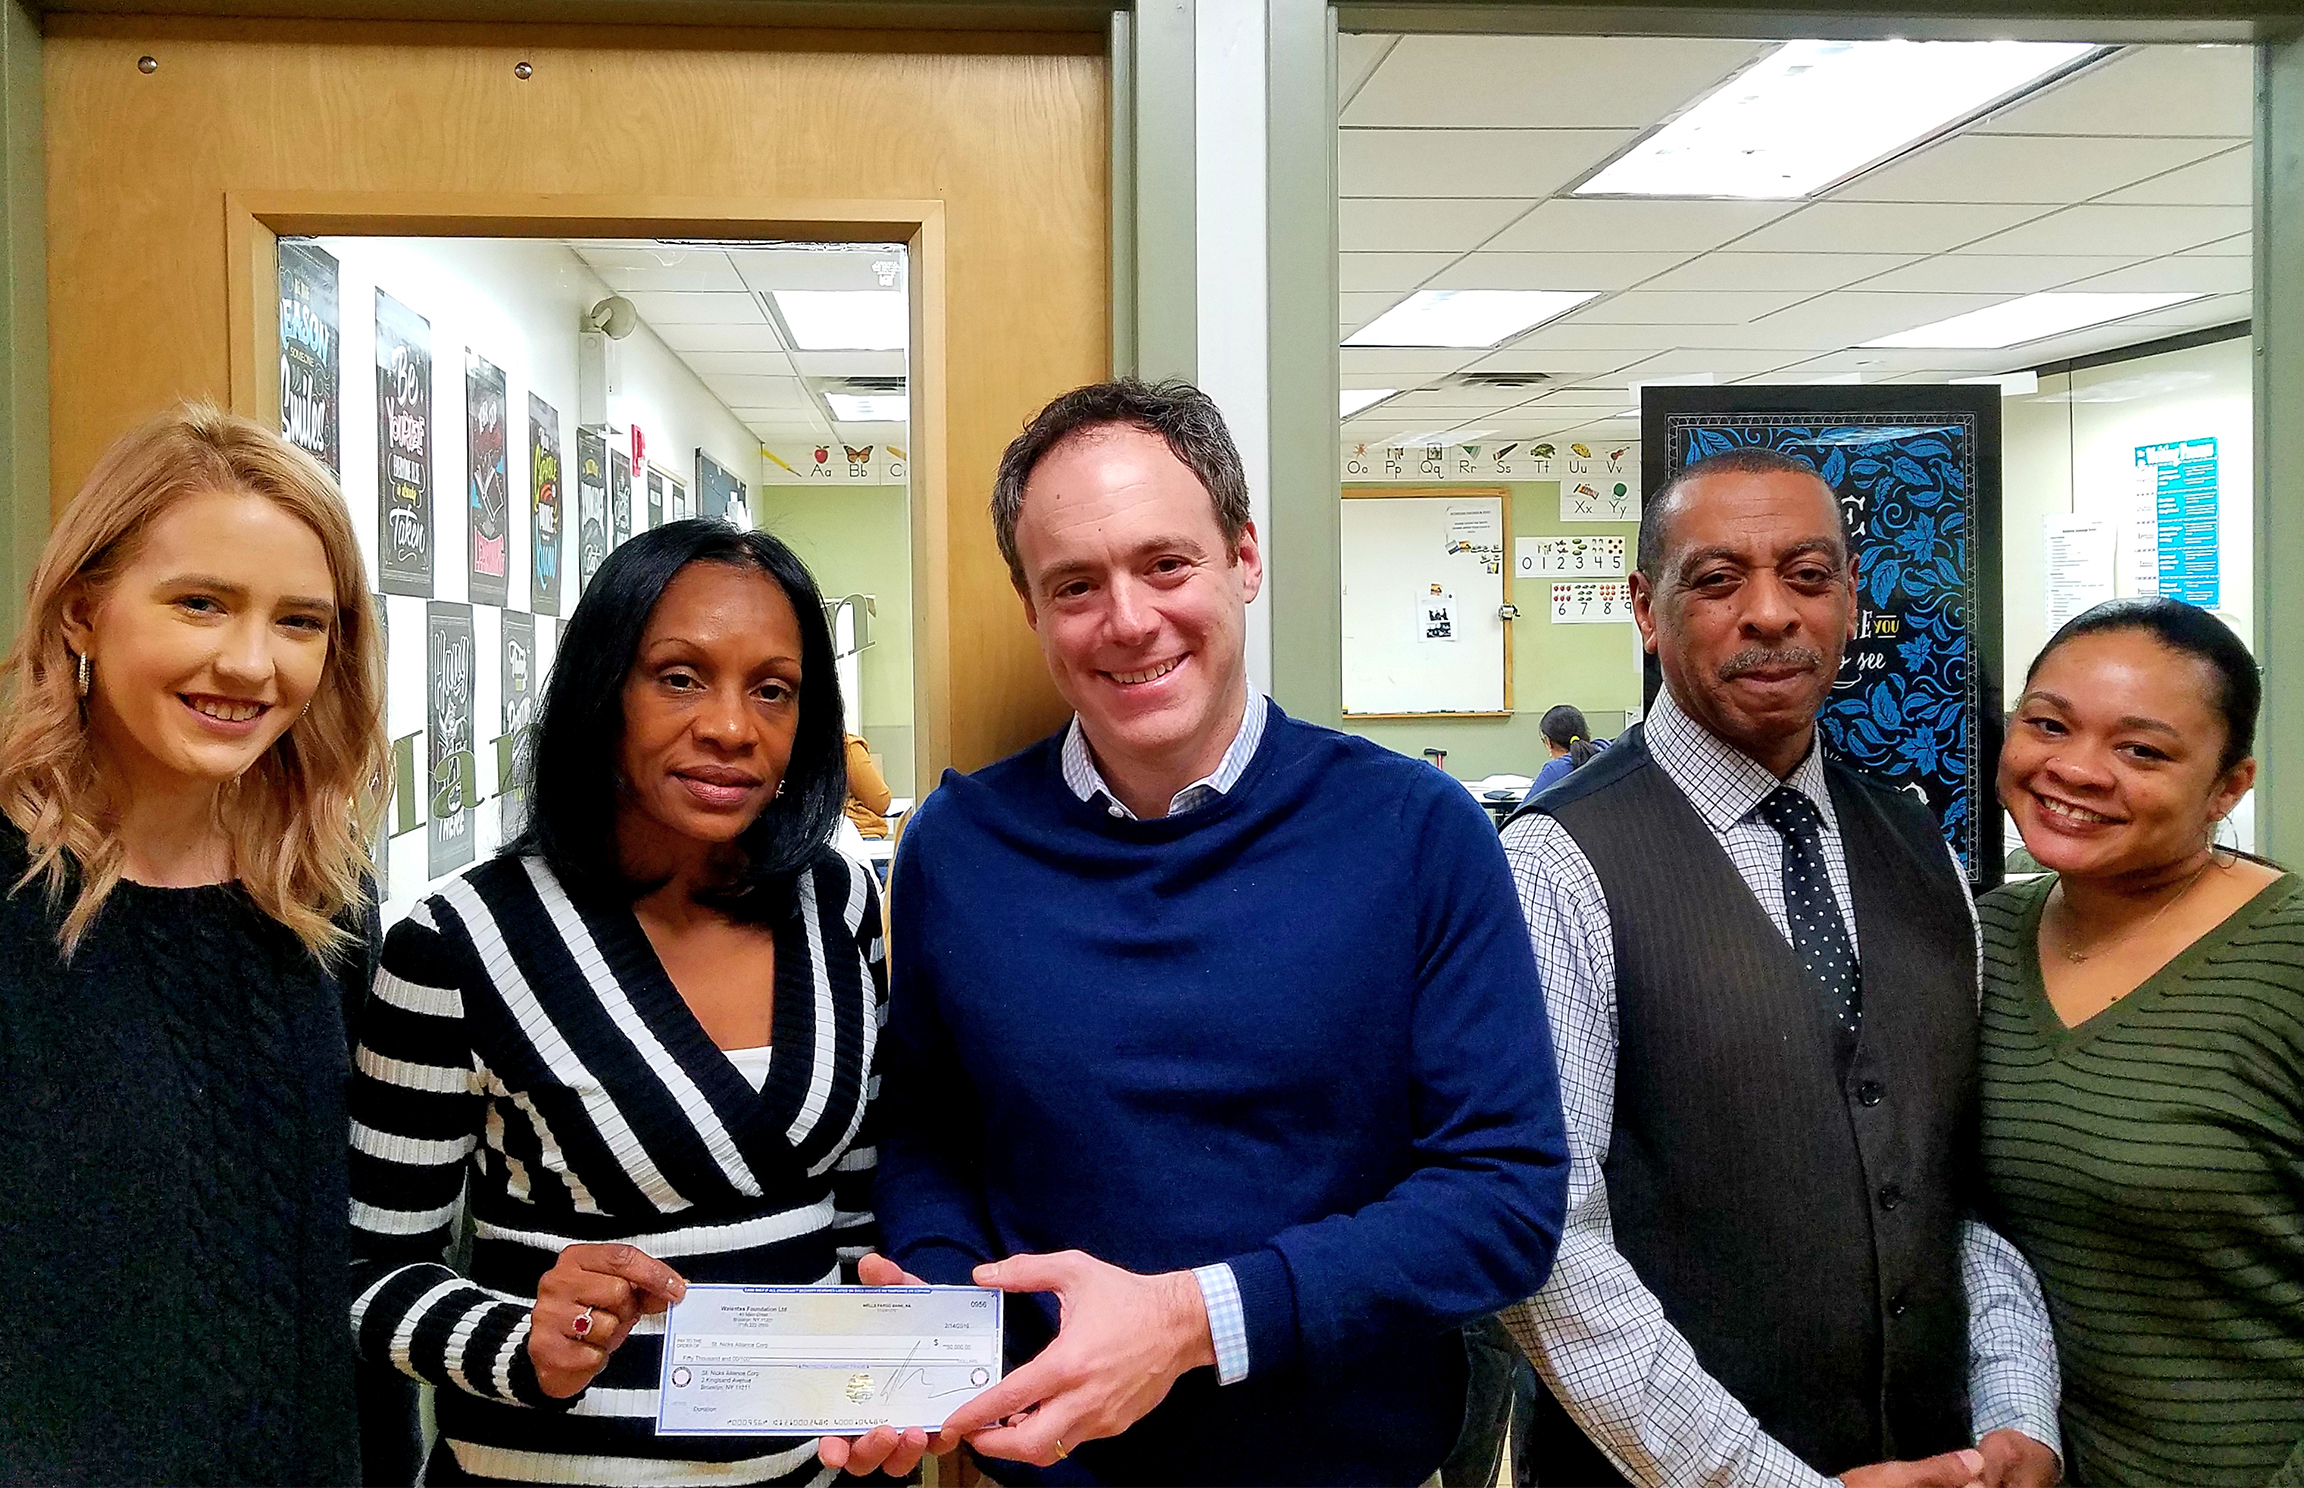 Pictured with David Lombino from left: Ashley Hickerson, Case Manager; Beatrice Brown, First Job Program Manager; Milton Brown, Job Readiness Trainer; and Dominic Savage, Transformational Coach.